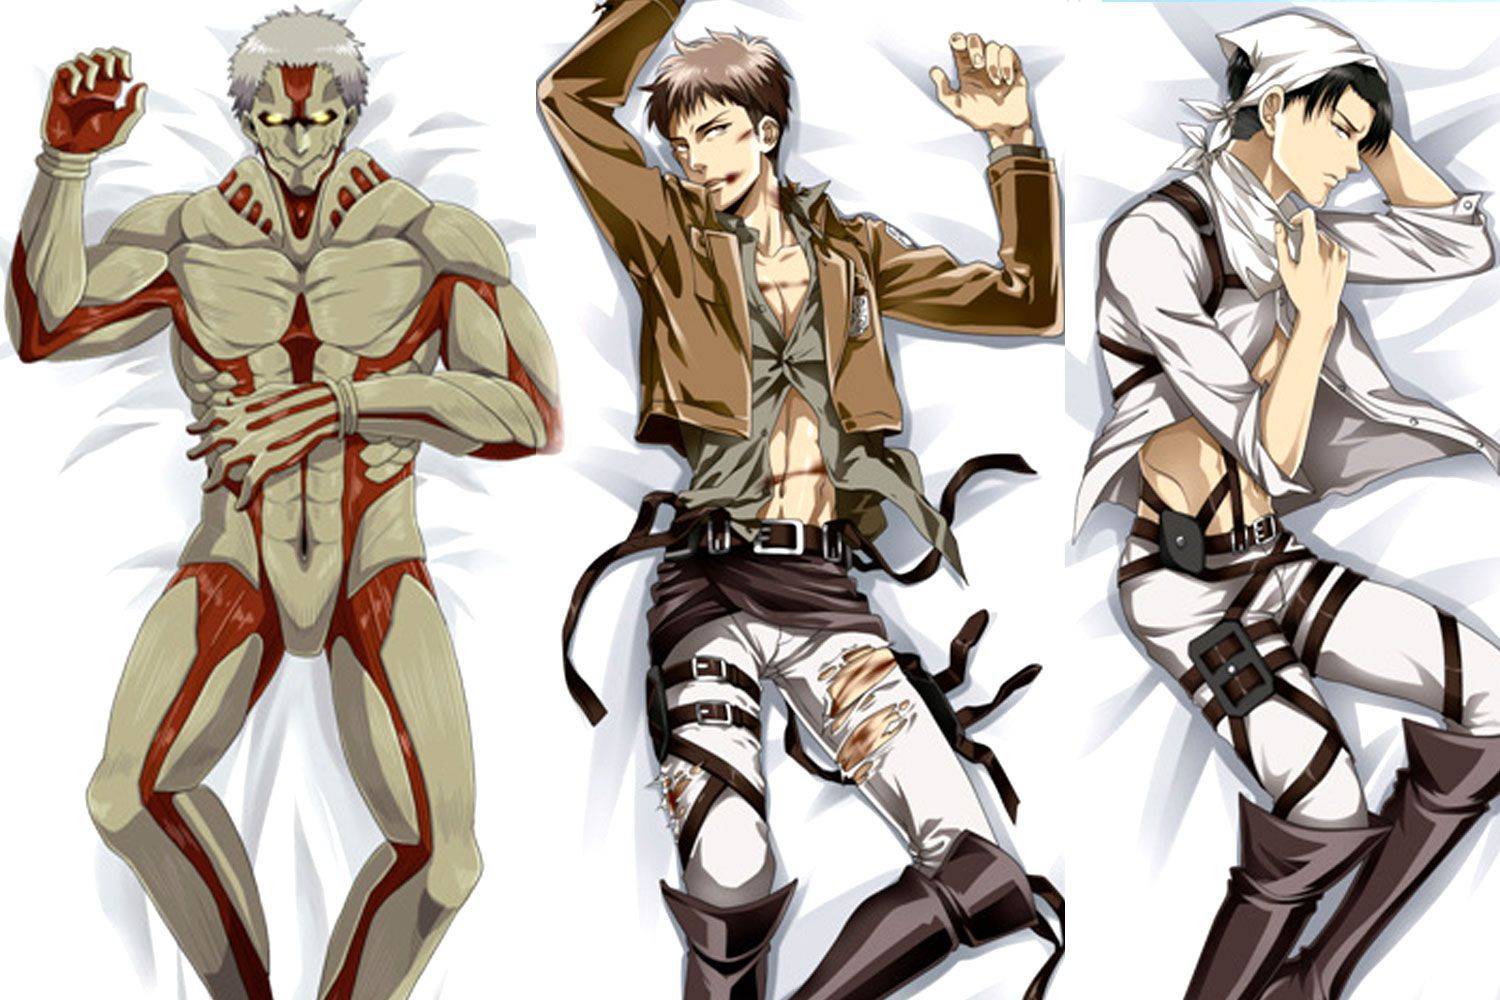 These Attack On Titan Anime Characters Are Hot. Crf 100 Decals. Clergy Signs Of Stroke. Song Eminem Signs Of Stroke. On Air Signs. Ice Hockey Team Logo. Aluminium Signs. Sandstone Wall Murals. Motivational Murals Murals